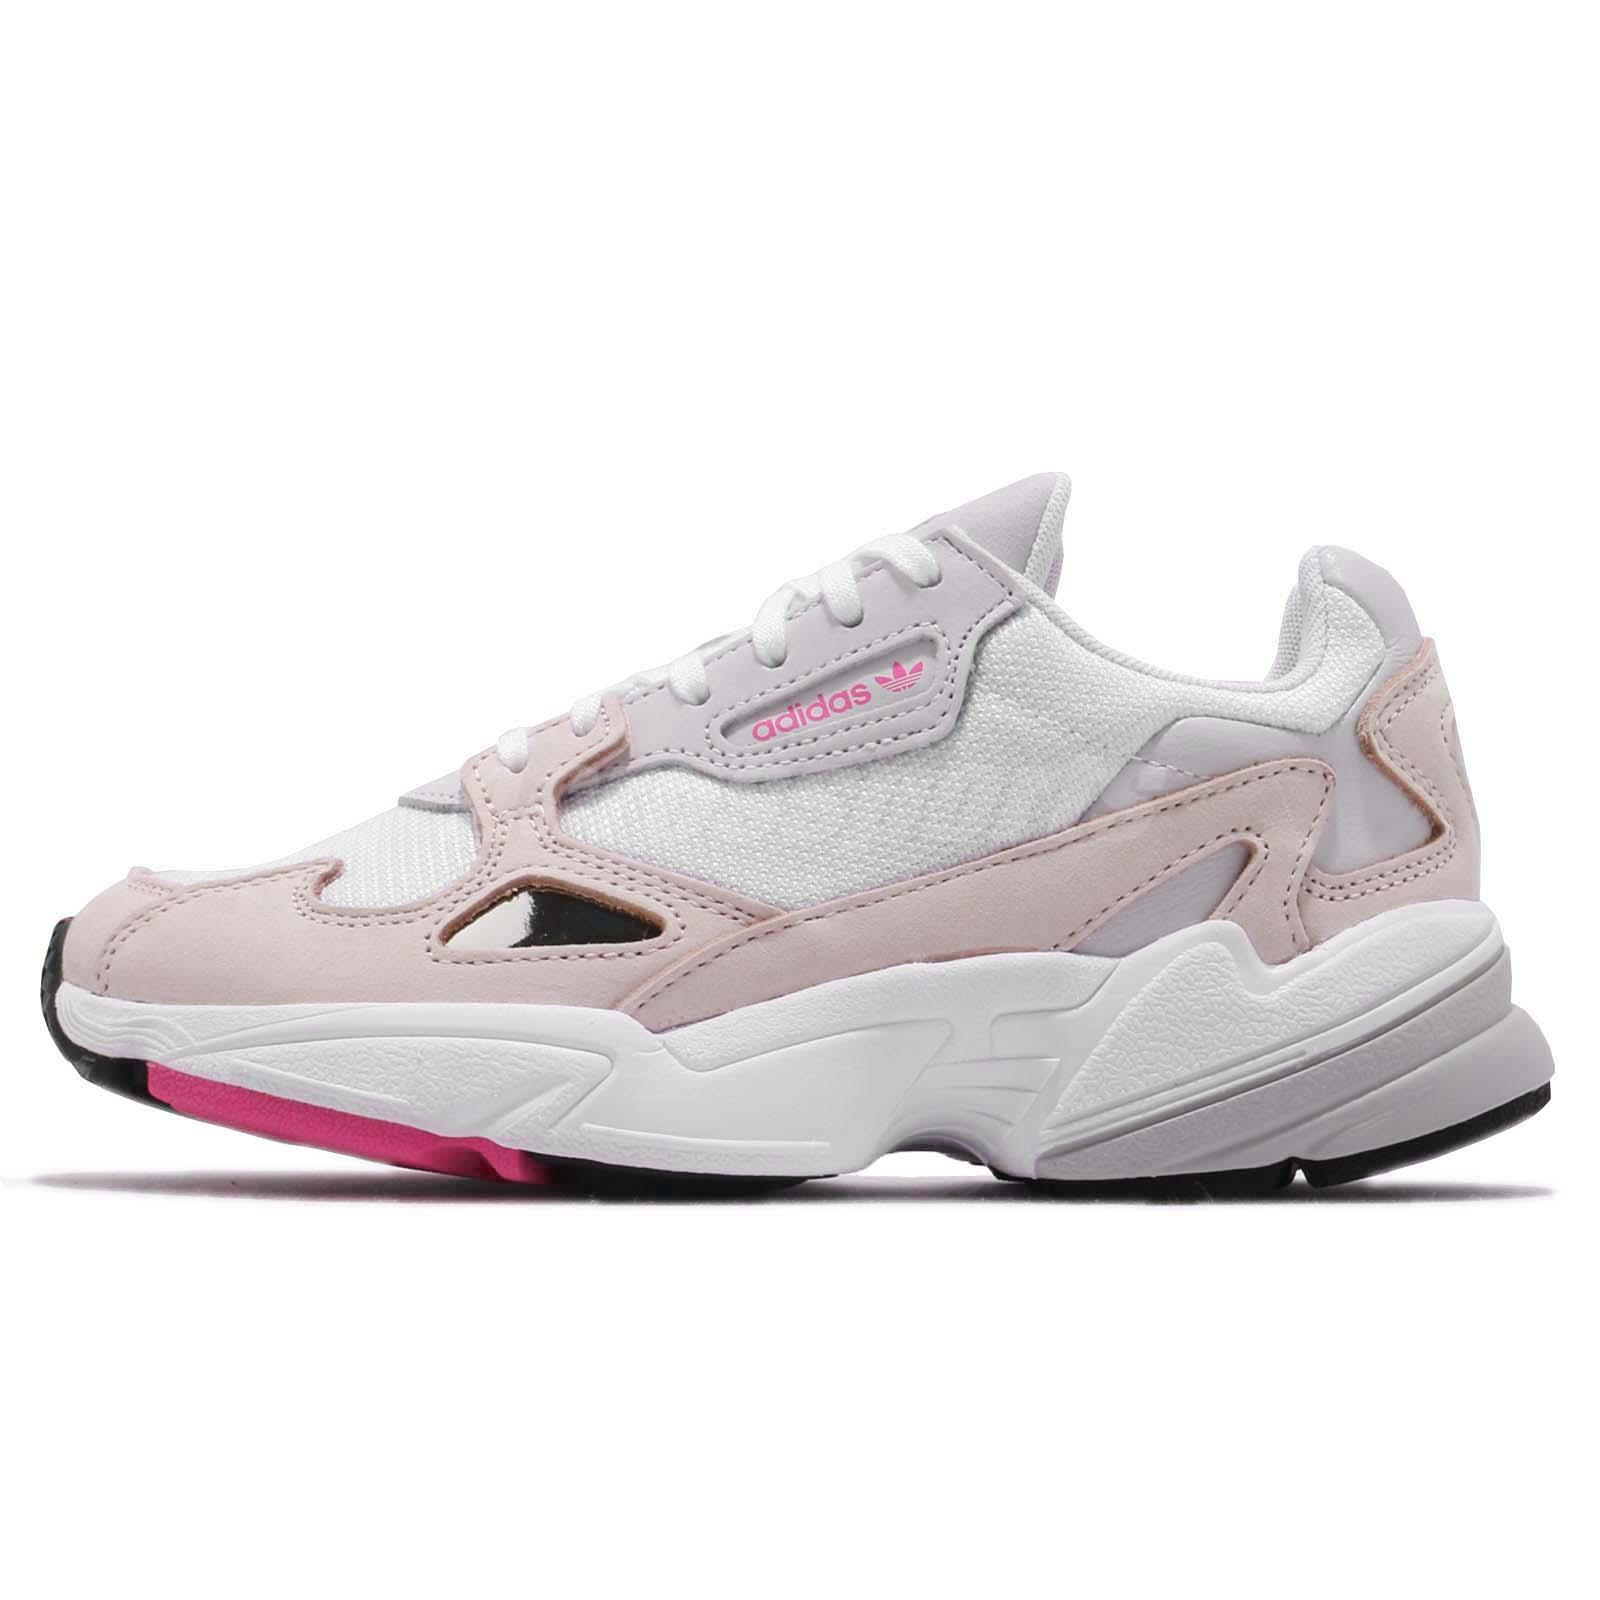 cheap for discount 0f38f be31b adidas Originals Falcon W White Ice Pink Grey Women Running Chunky Shoes  DB2763